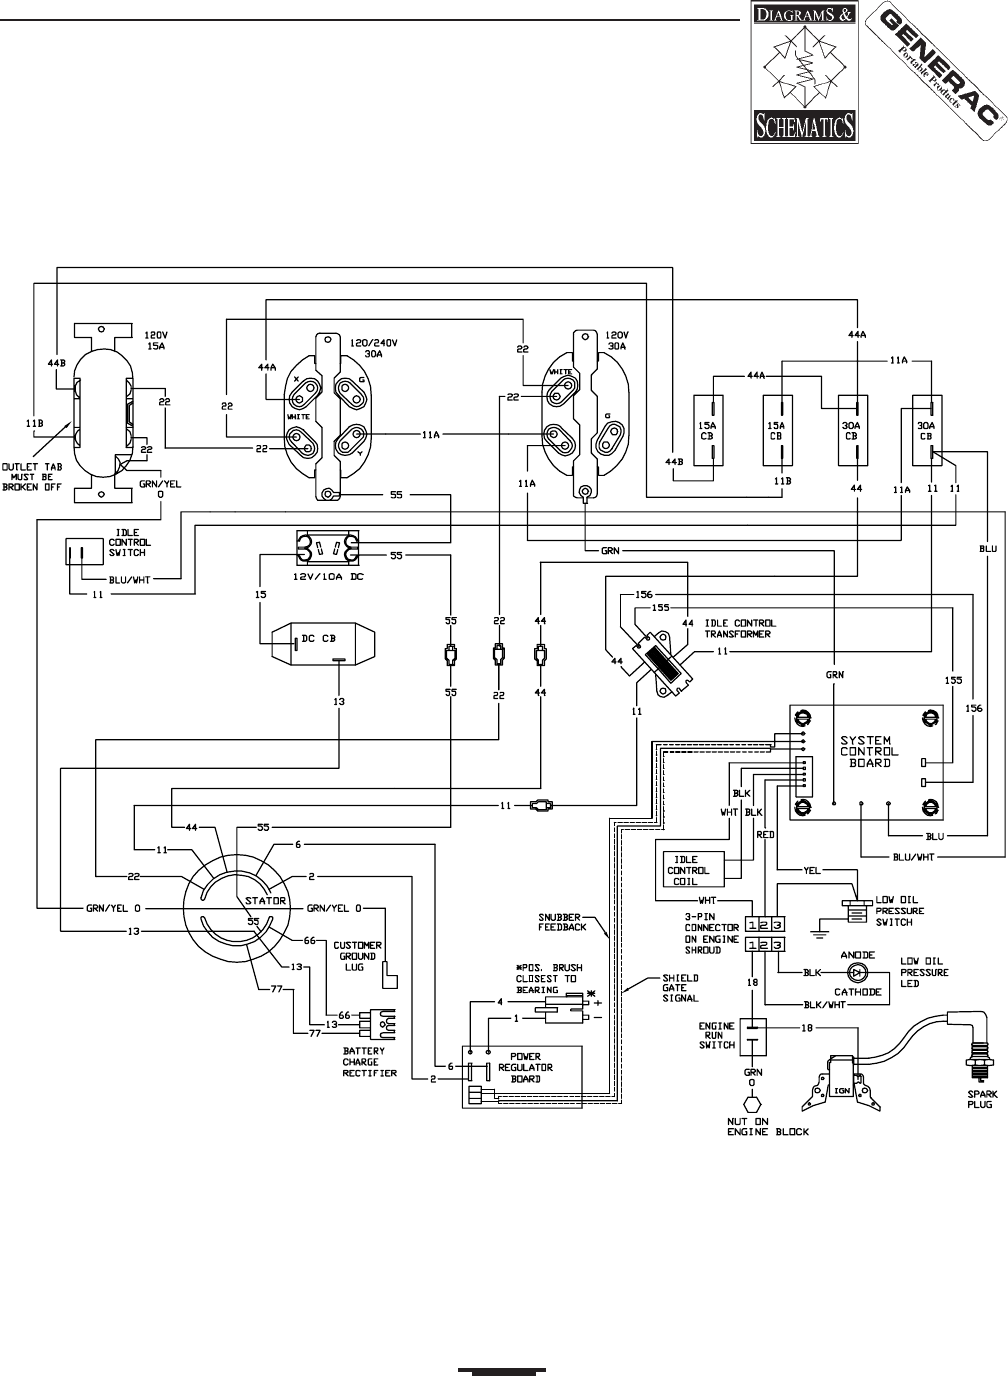 portable generator wiring diagram portable image generac 5500xl generator wiring diagram jodebal com on portable generator wiring diagram